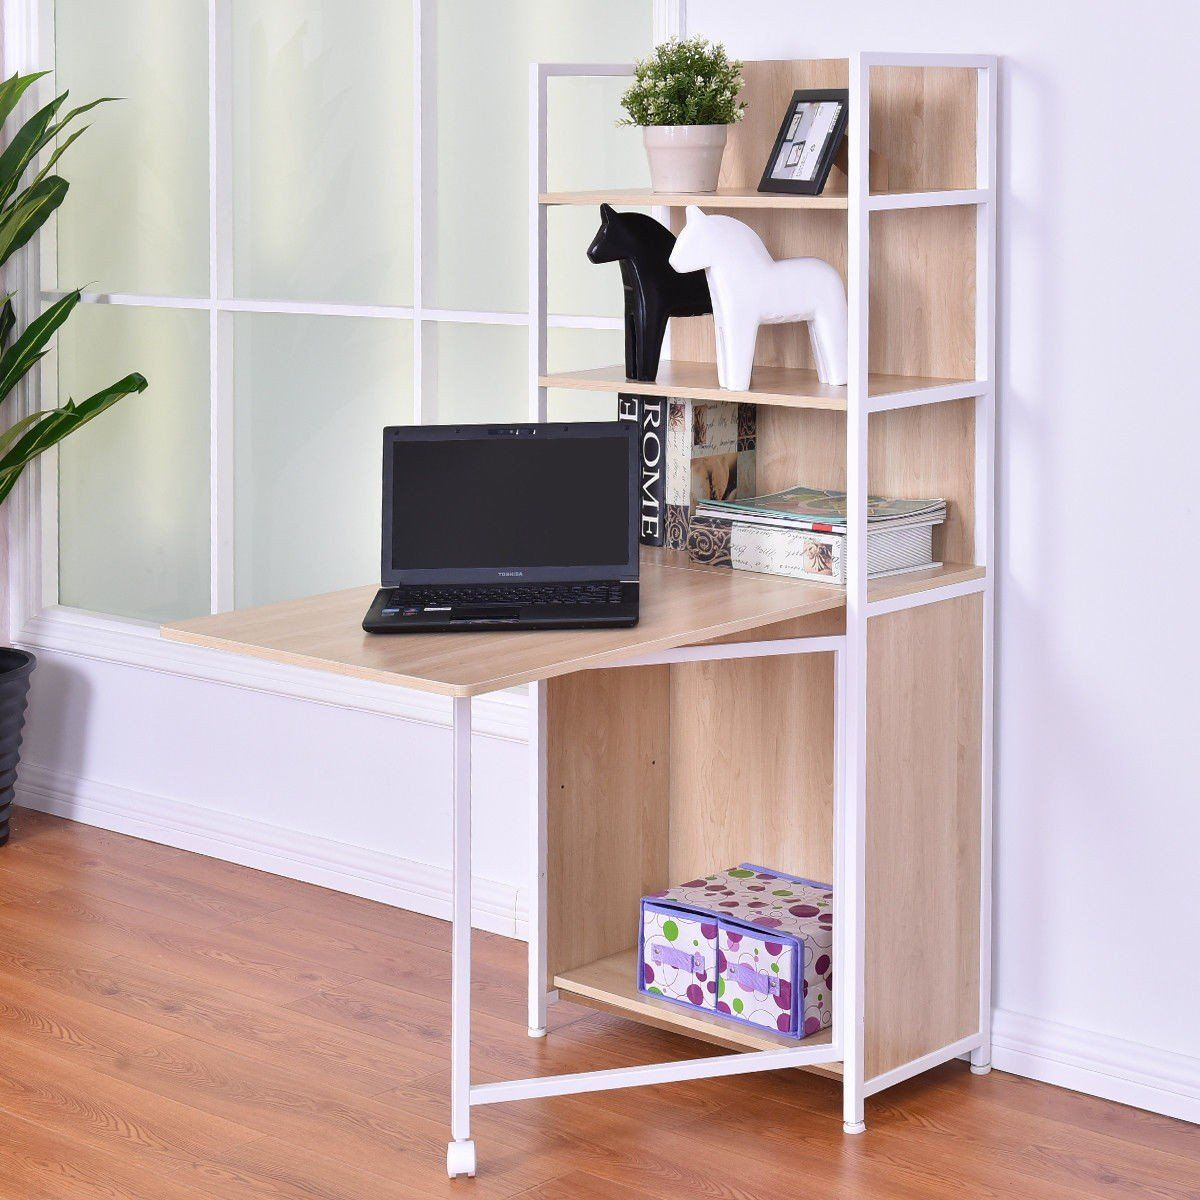 2 In 1 Folding Fold Out Convertible Desk With Cabinet Bookshelf By Choice Products In 2020 Convertible Desk Bookshelf Desk Computer Desk With Shelves